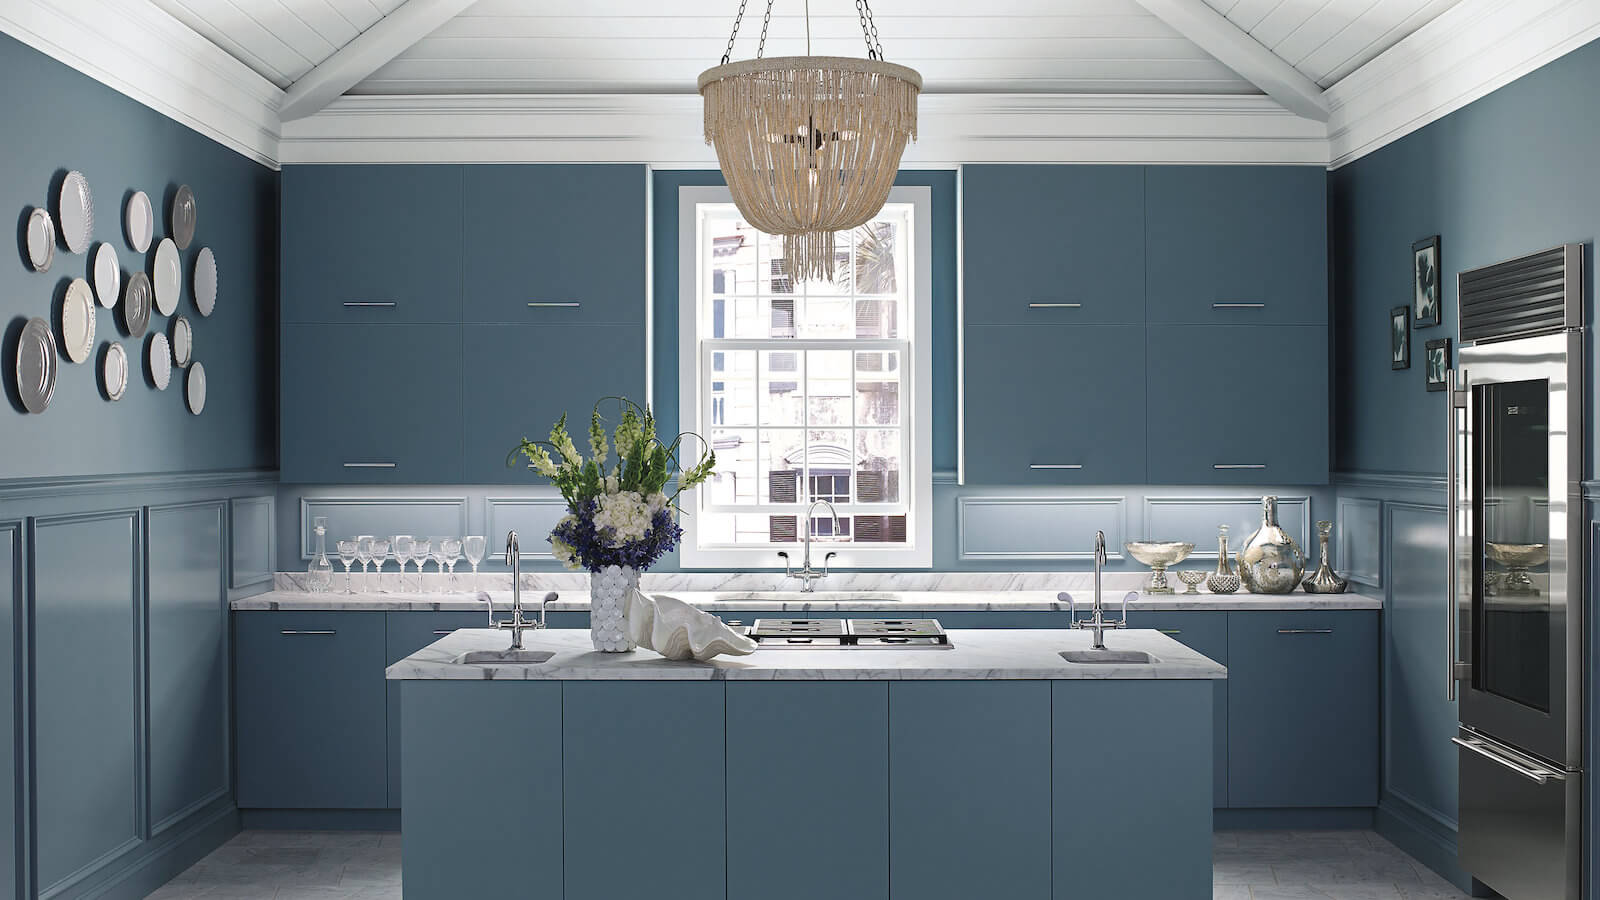 Open concept kitchen with island, Benjamin Moore paint on walls in a navy grey colour